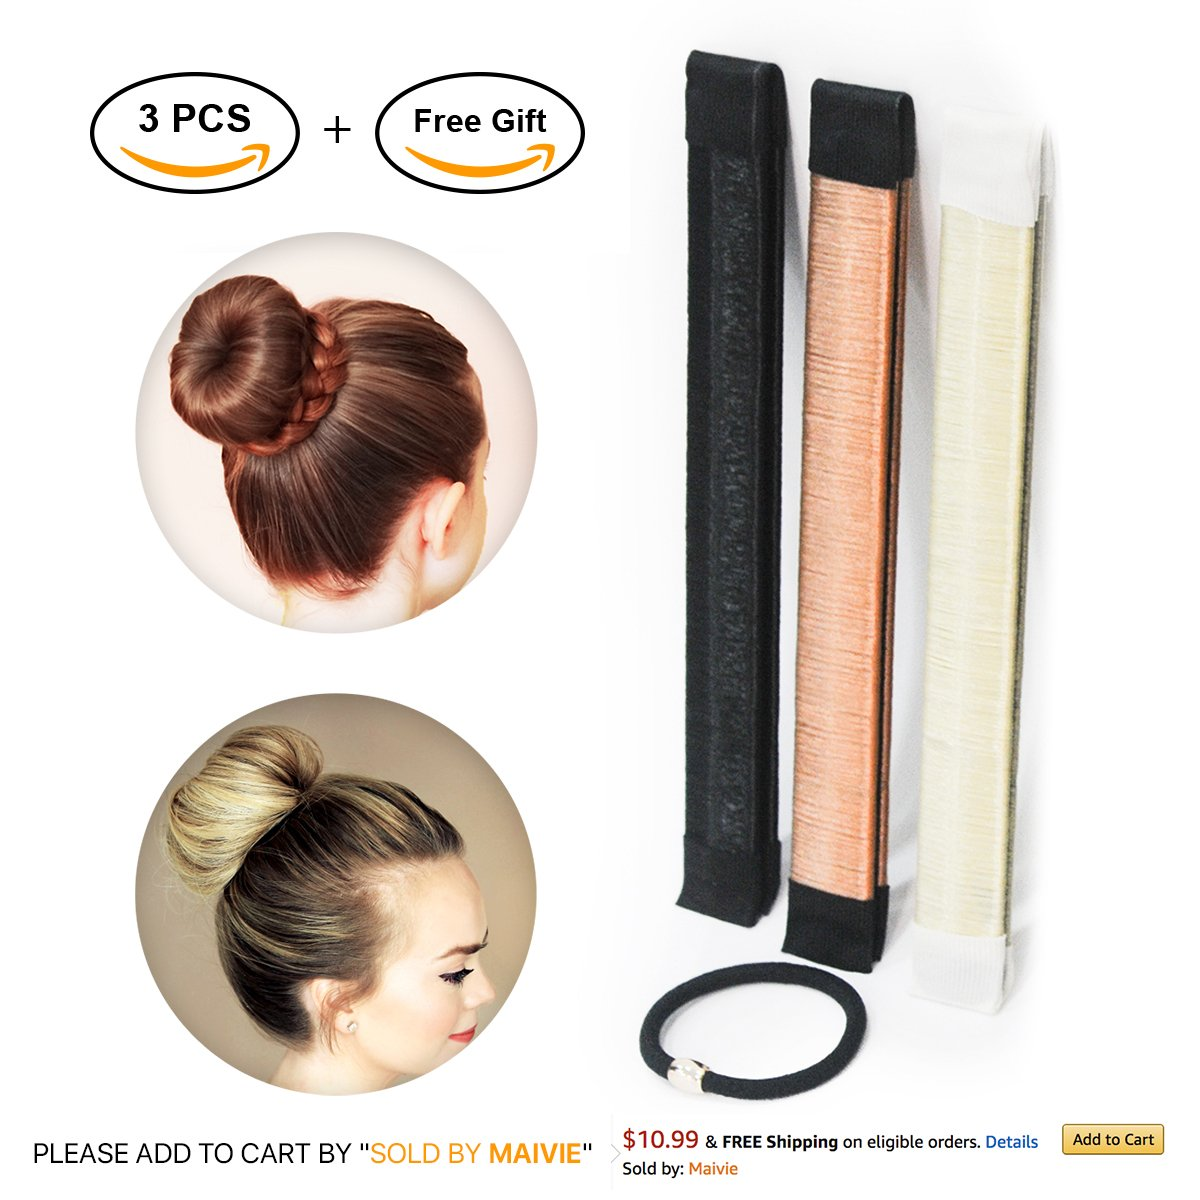 Hair Buns Maker - Fast Messy Perfect Sock Bun Magic Curler Clip French Donut Twist Shaper - Easy DIY Accessories Styling Tool for Women Girls - 3 PCS (Black, Blonde, Brown color) and 1 Hair Tie by Maivie